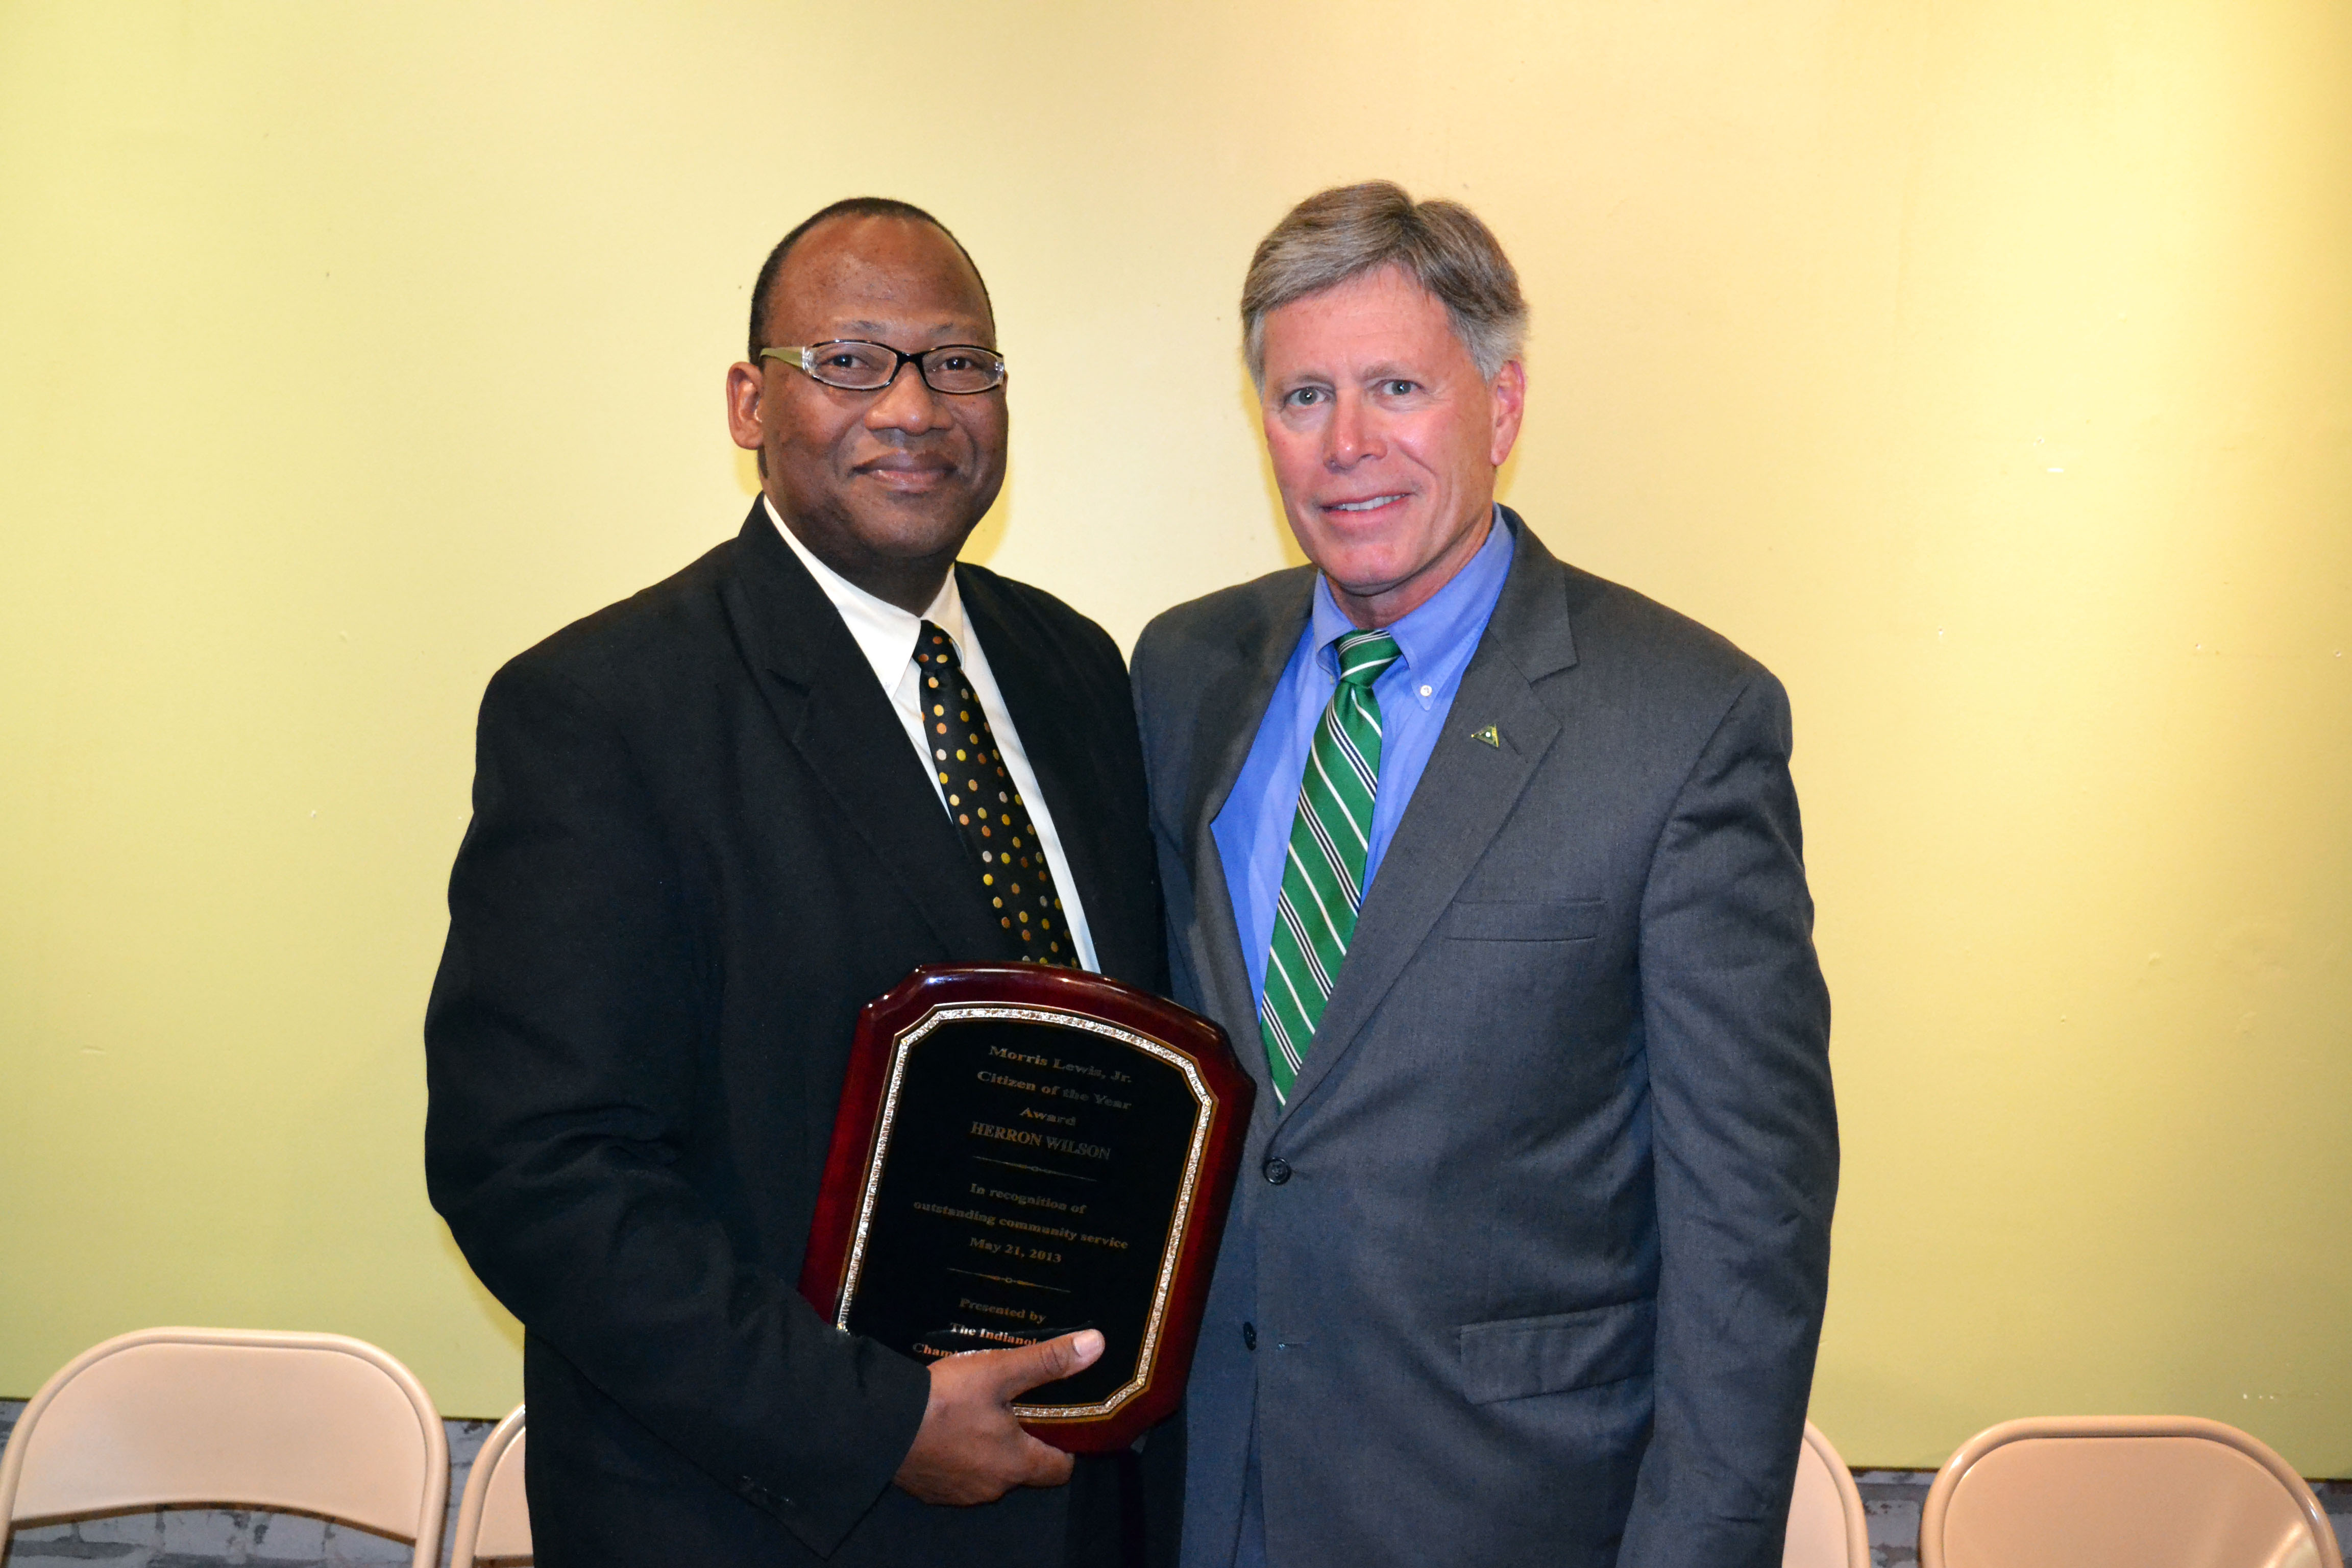 PHOTO:  Pictured are Rev. Herron Wilson, recipient of the Morris Lewis Jr. Citizen of the Year Award, and Delta State University President, William N. LaForge.